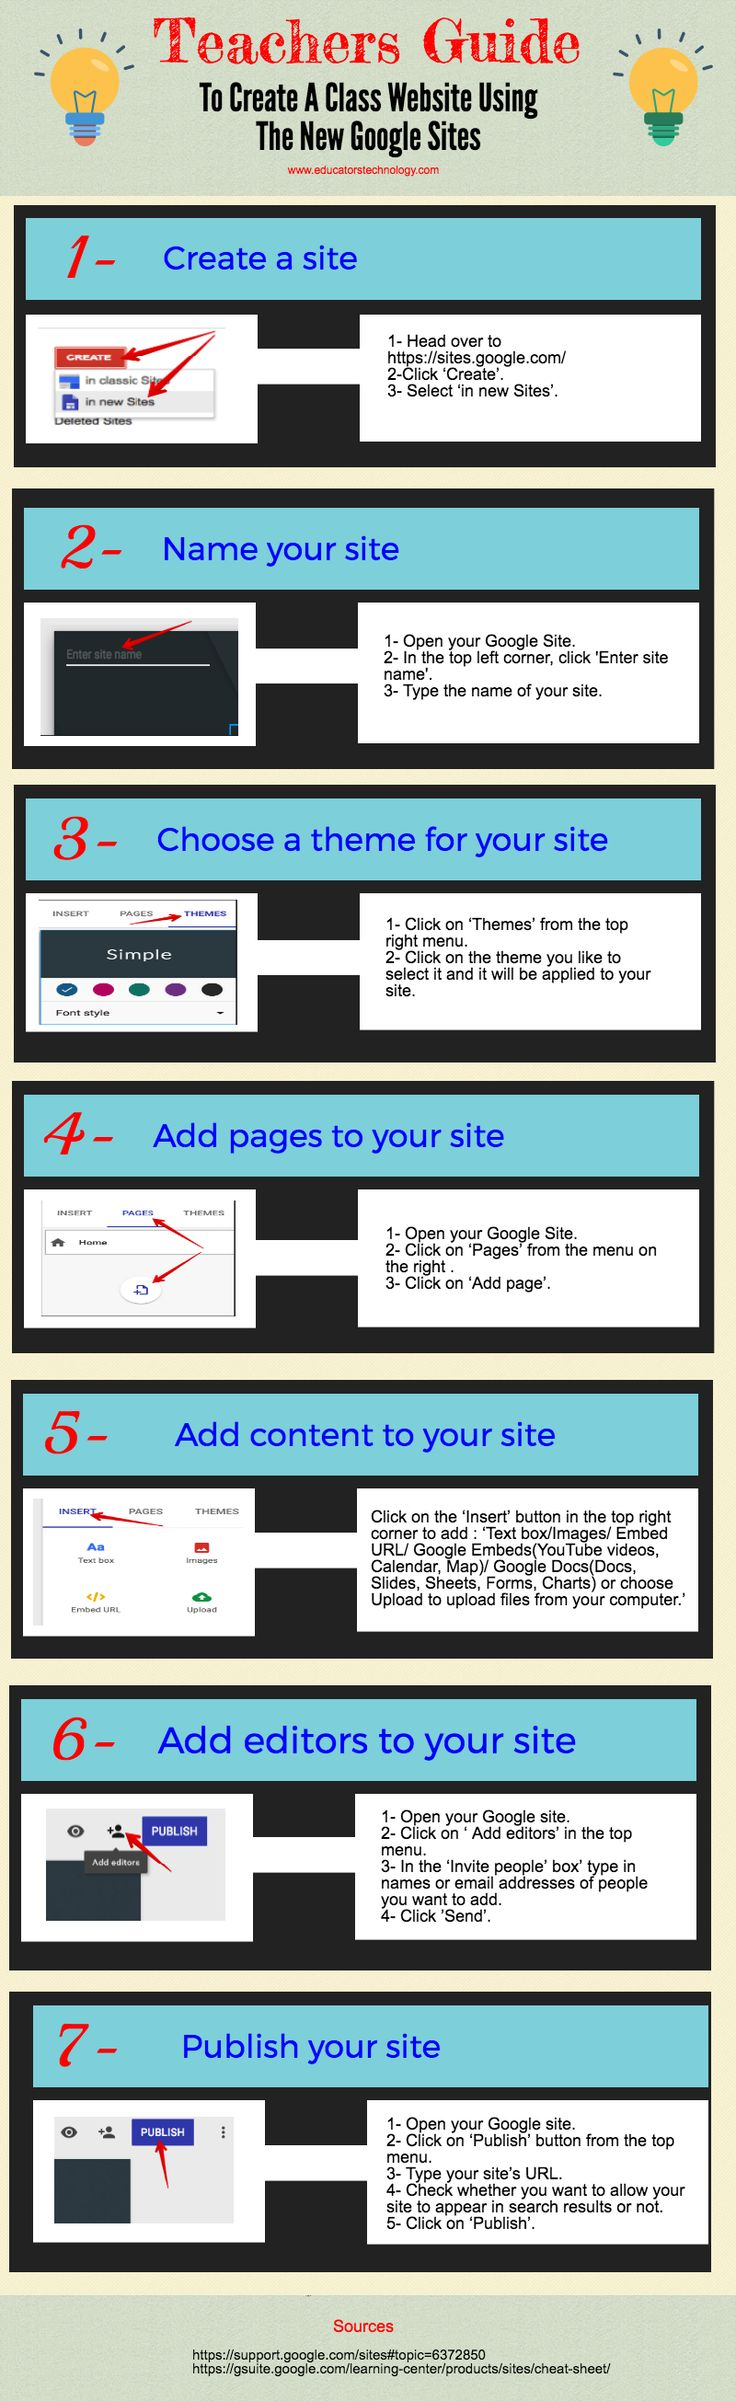 March 13, 2017 Here is a step by step guide to help you create a website for your class using the new Google Sites. As you probably know, the new Google Sites 'comes with a bunch of extra... ....read